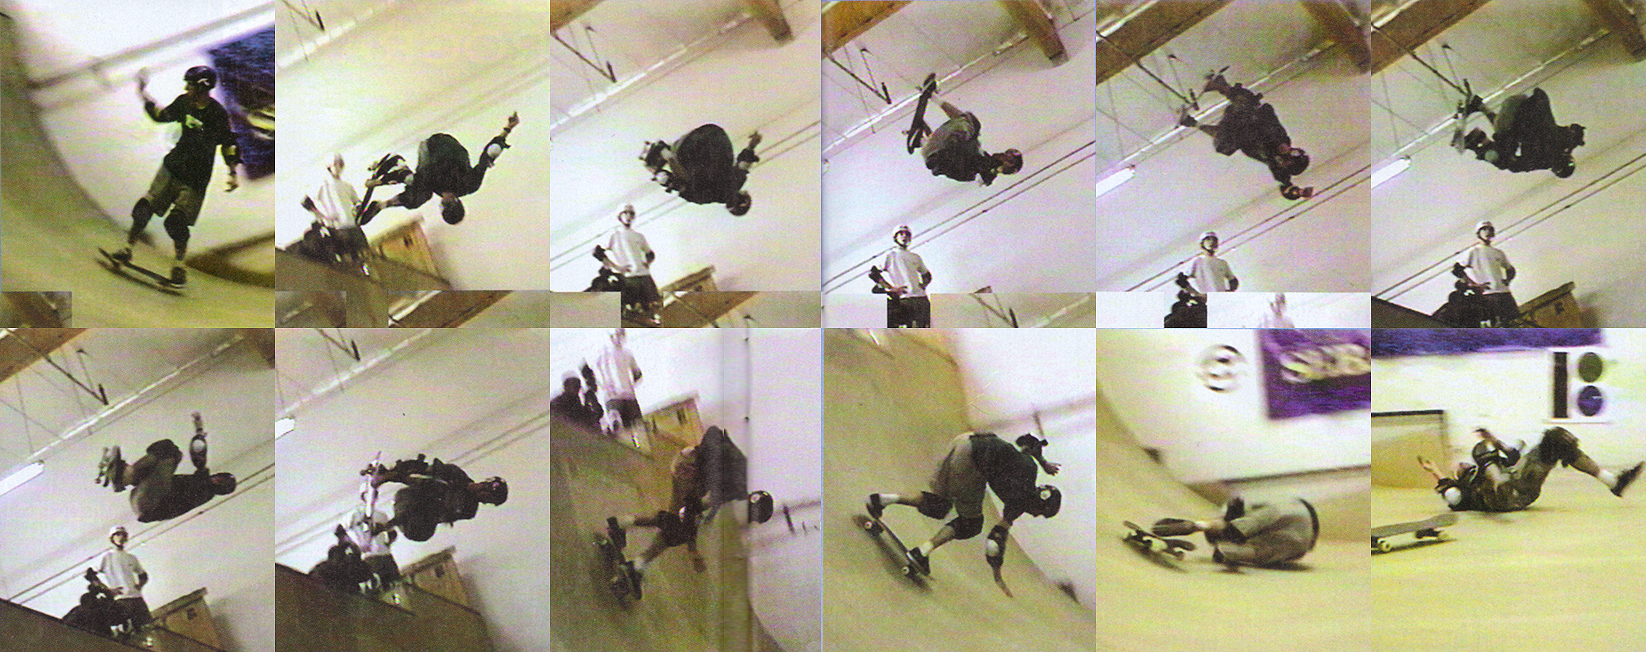 tony hawk responds to allegations made in all this mayhem